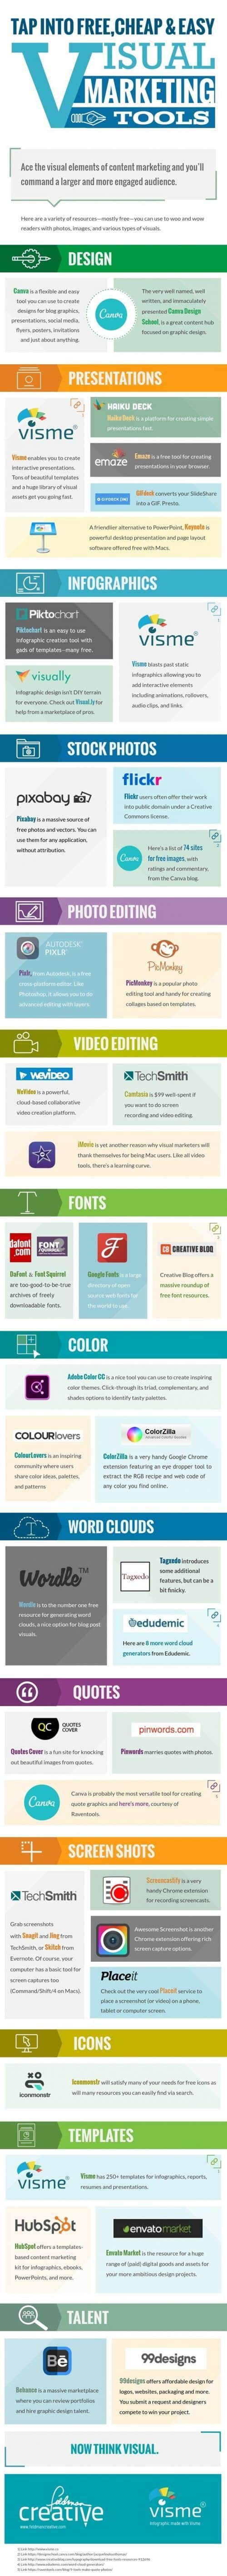 herramientas para el marketing visual infografia